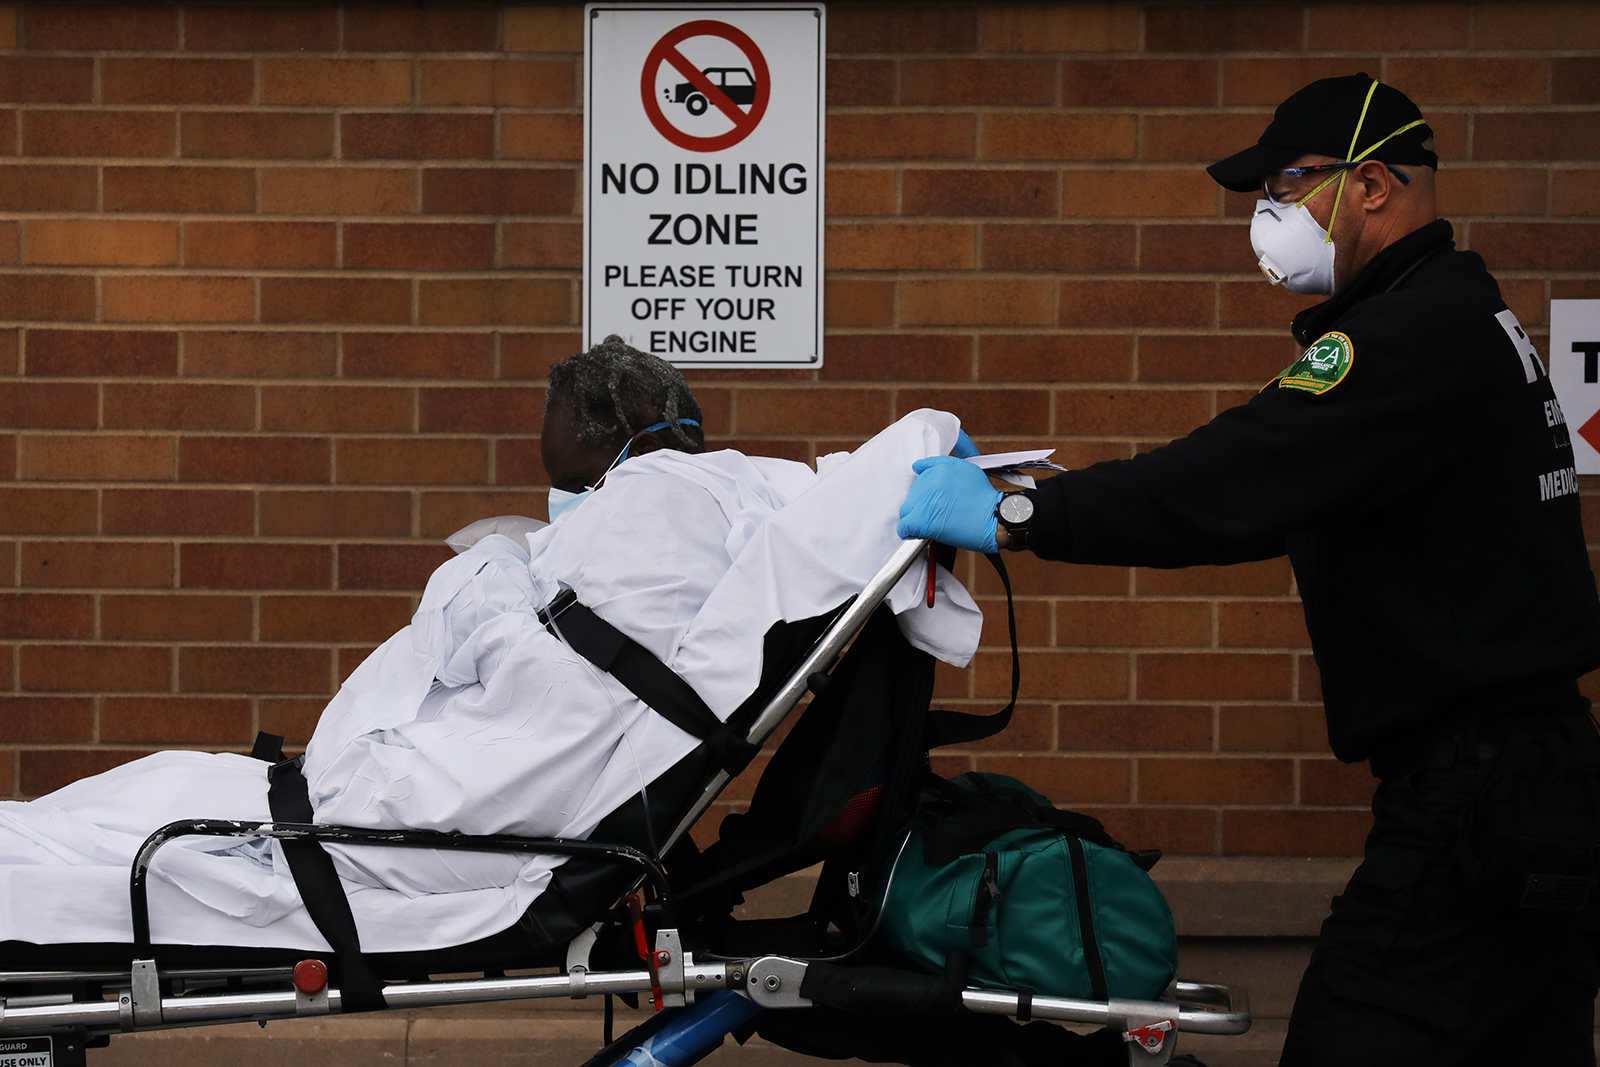 Medical workers transport a patient outside of a special coronavirus intake area at Maimonides Medical Center on April 27, in the Brooklyn borough of New York City.